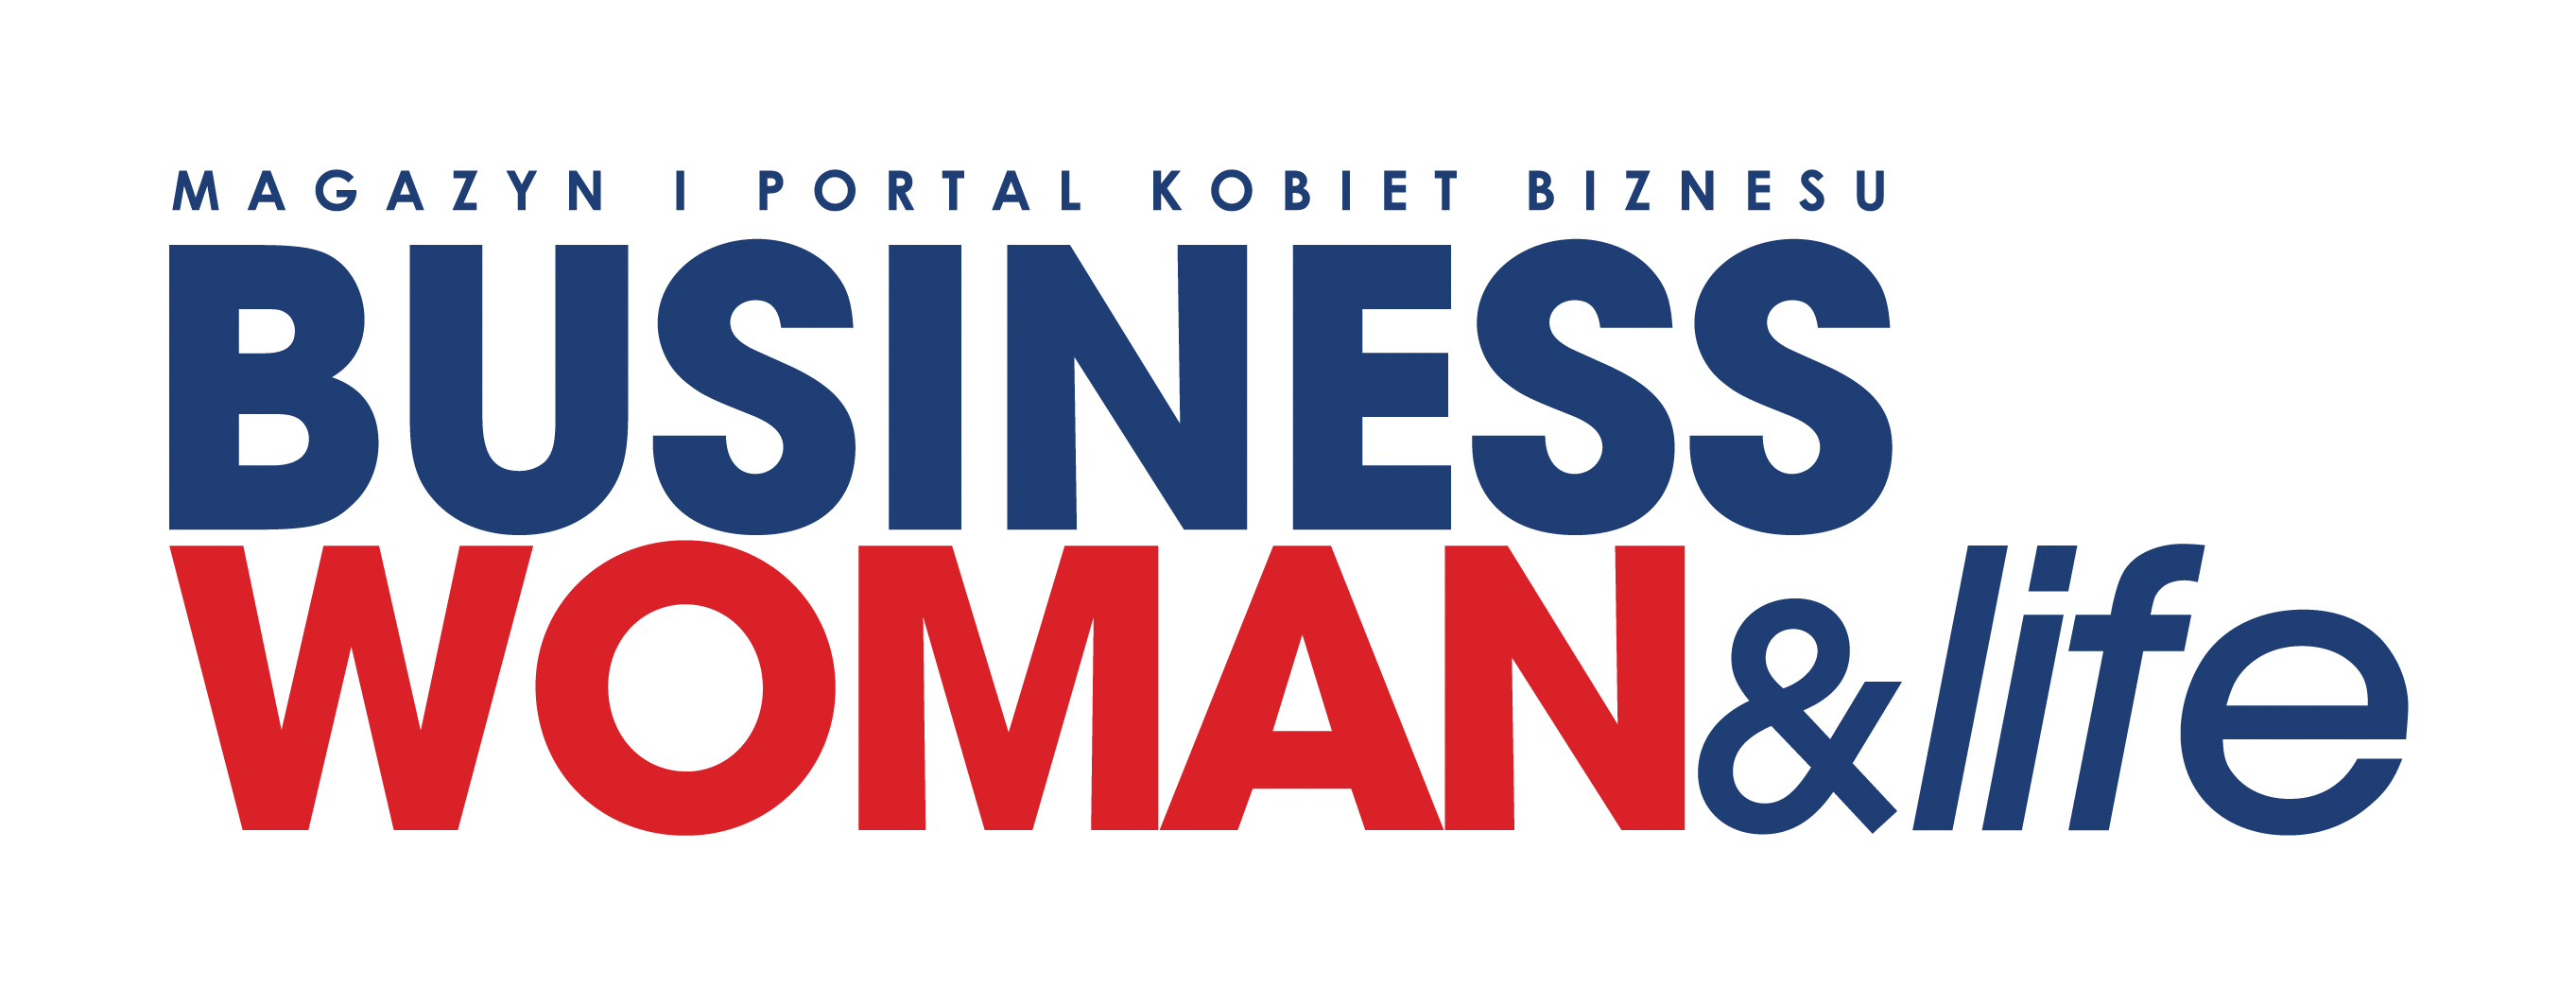 Businesswomanlife logo